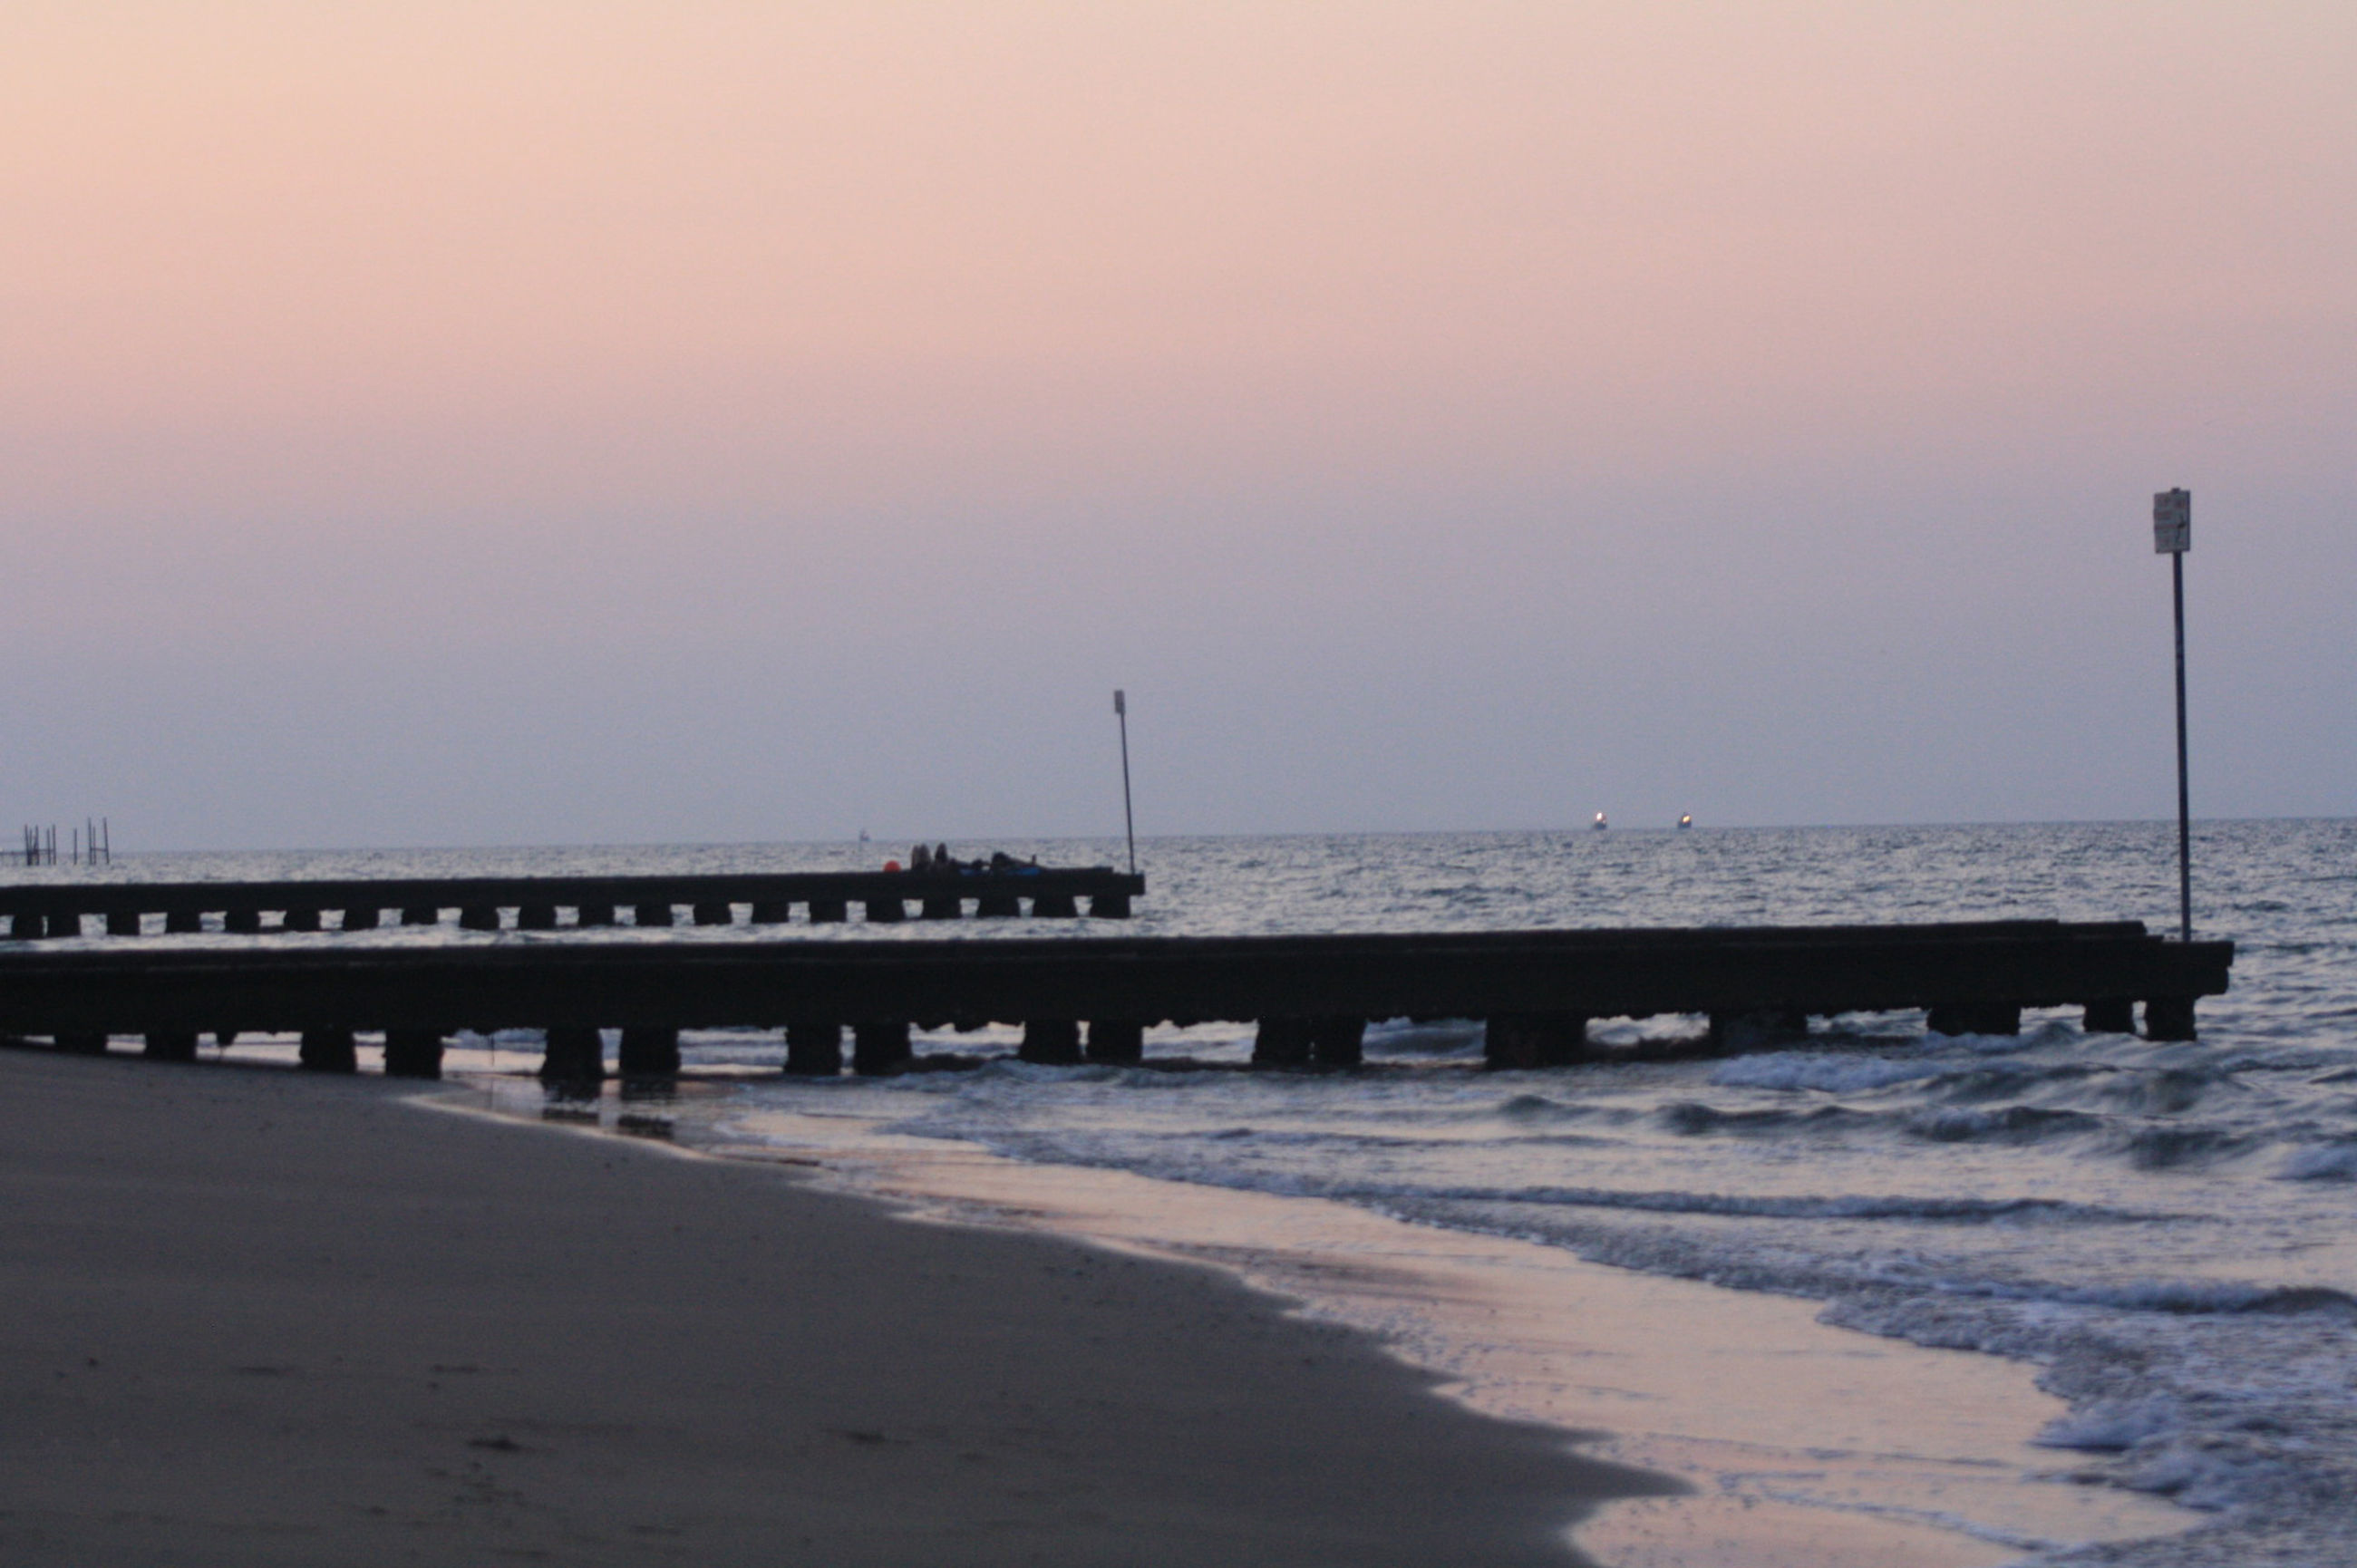 sea, water, horizon over water, sunset, beach, tranquil scene, scenics, tranquility, shore, pier, beauty in nature, copy space, nature, sky, clear sky, idyllic, silhouette, sand, wave, dusk